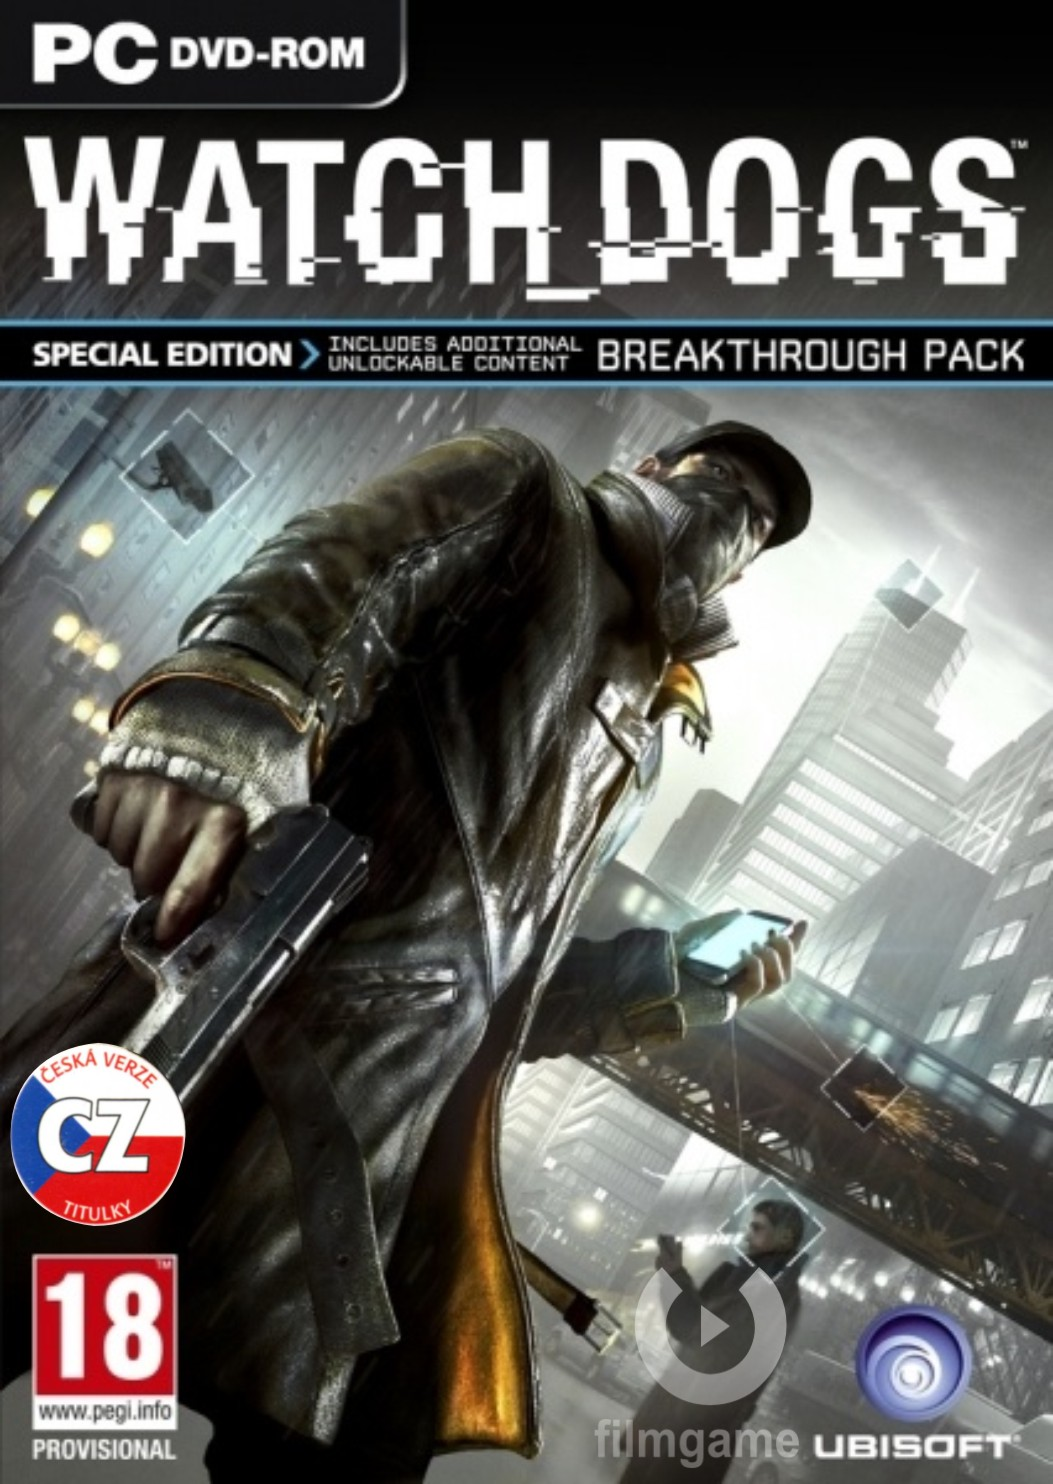 WATCH DOGS SPECIAL EDITION CZ - PC